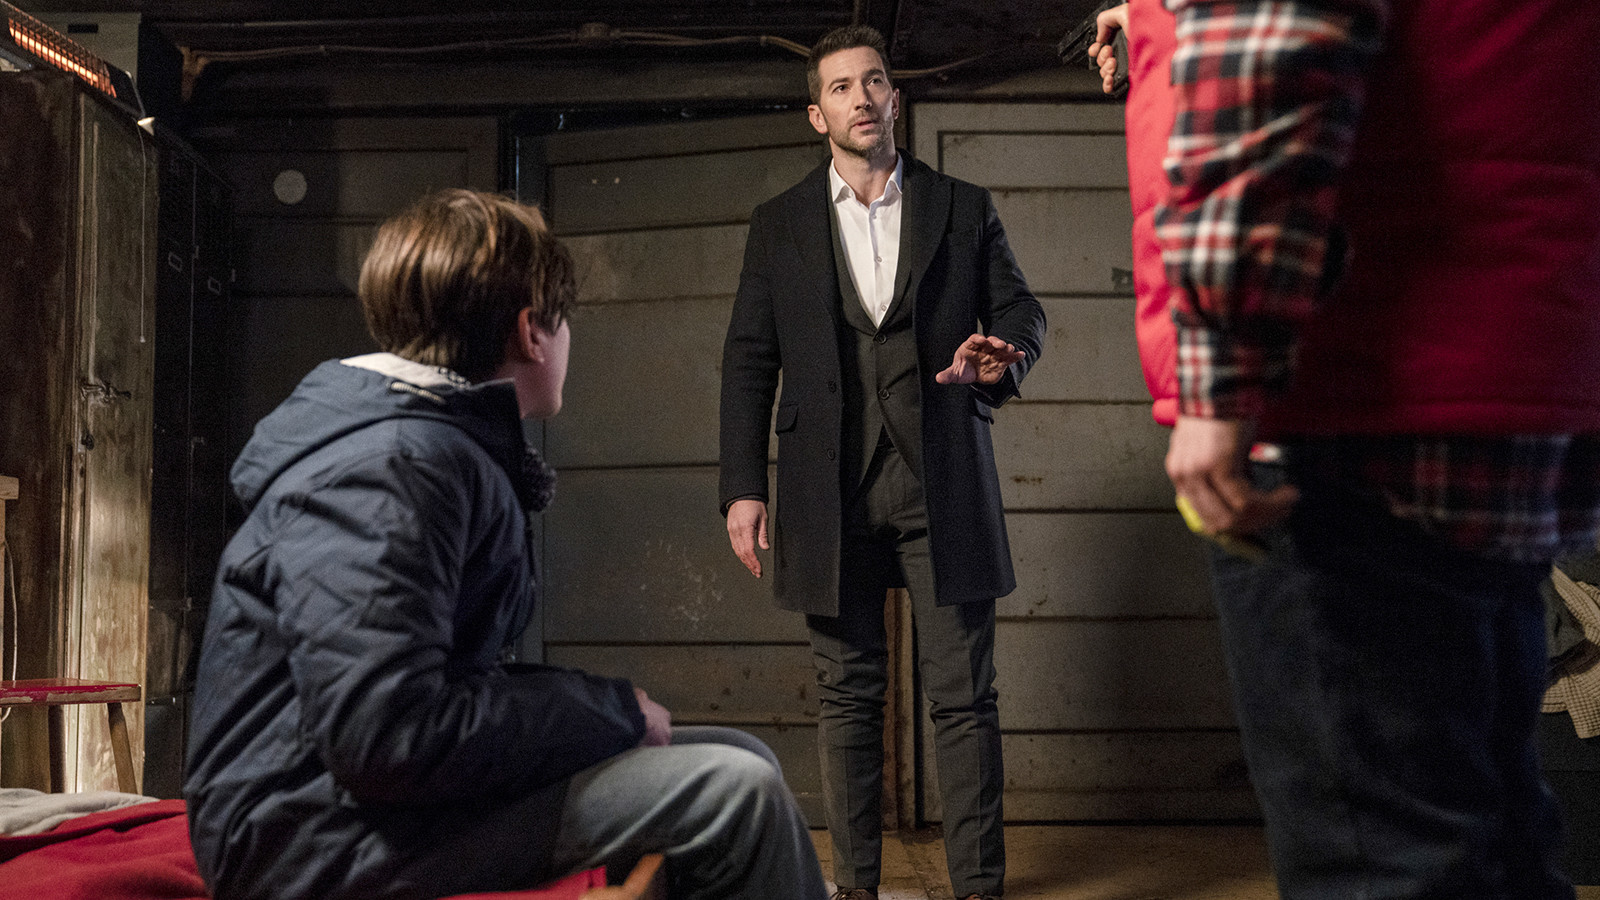 Saturday's TV highlights and weekend talk shows: 'Ransom' on CBS